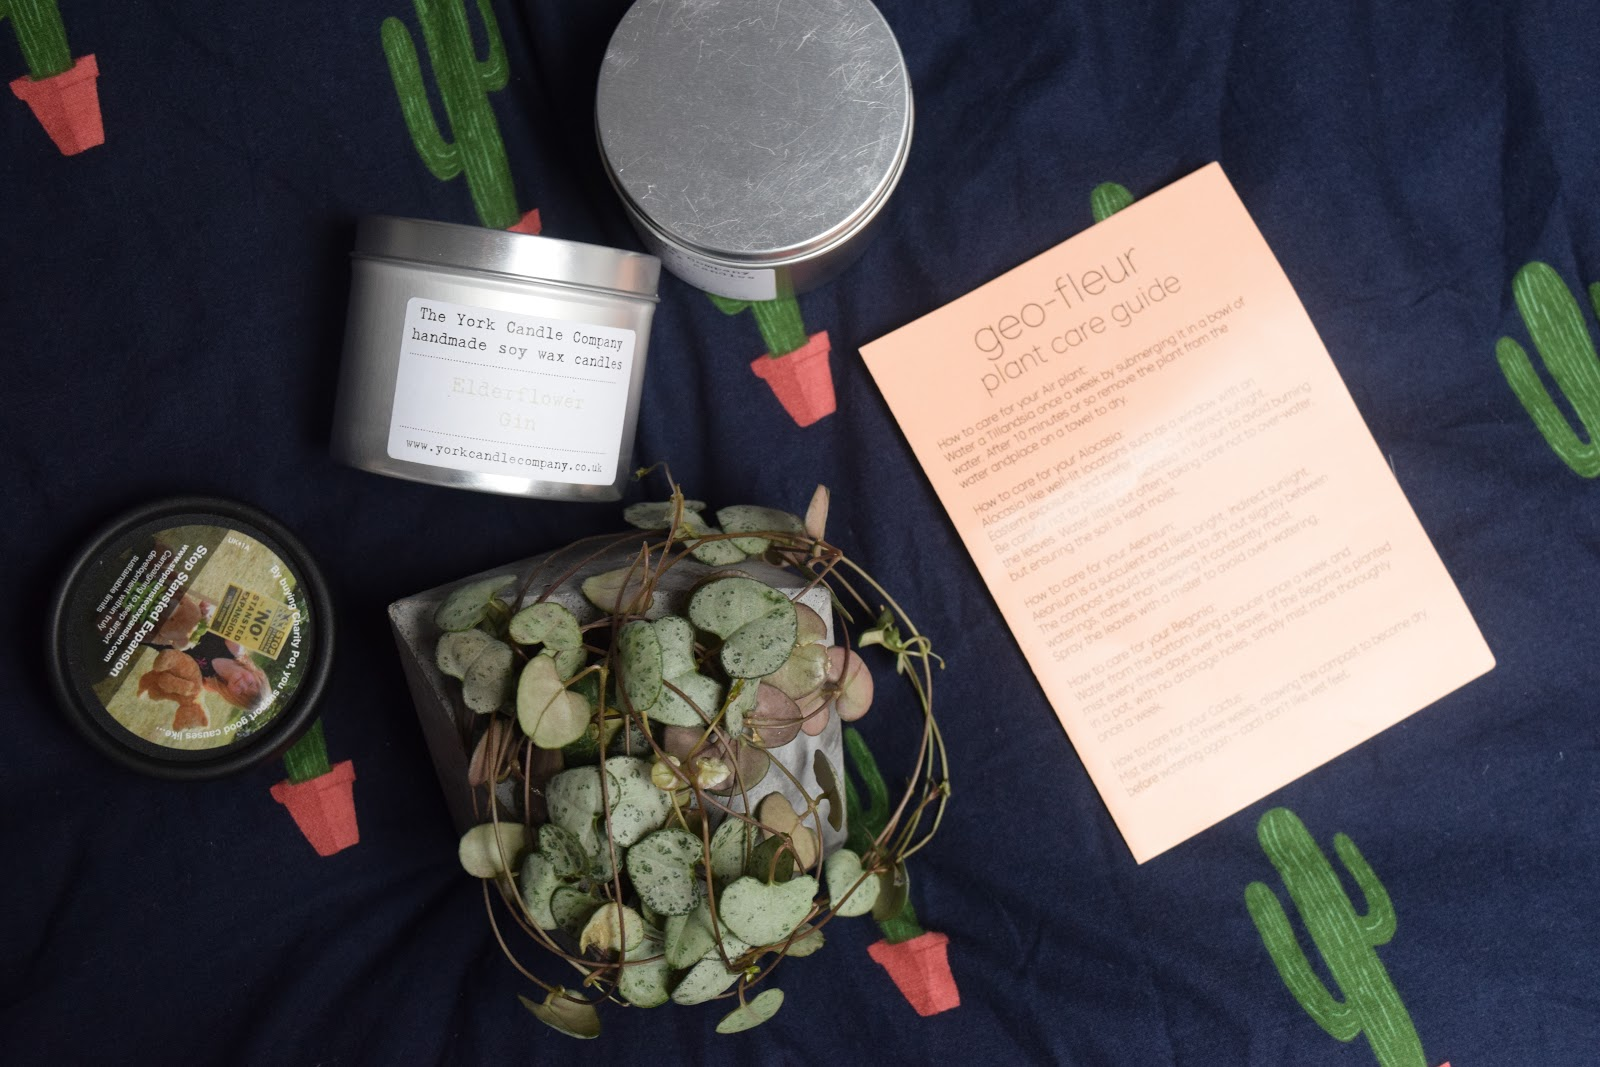 Leeds haul with Geo Fleur string of hearts plant, Lush charity pot moisturiser and York candle company candles